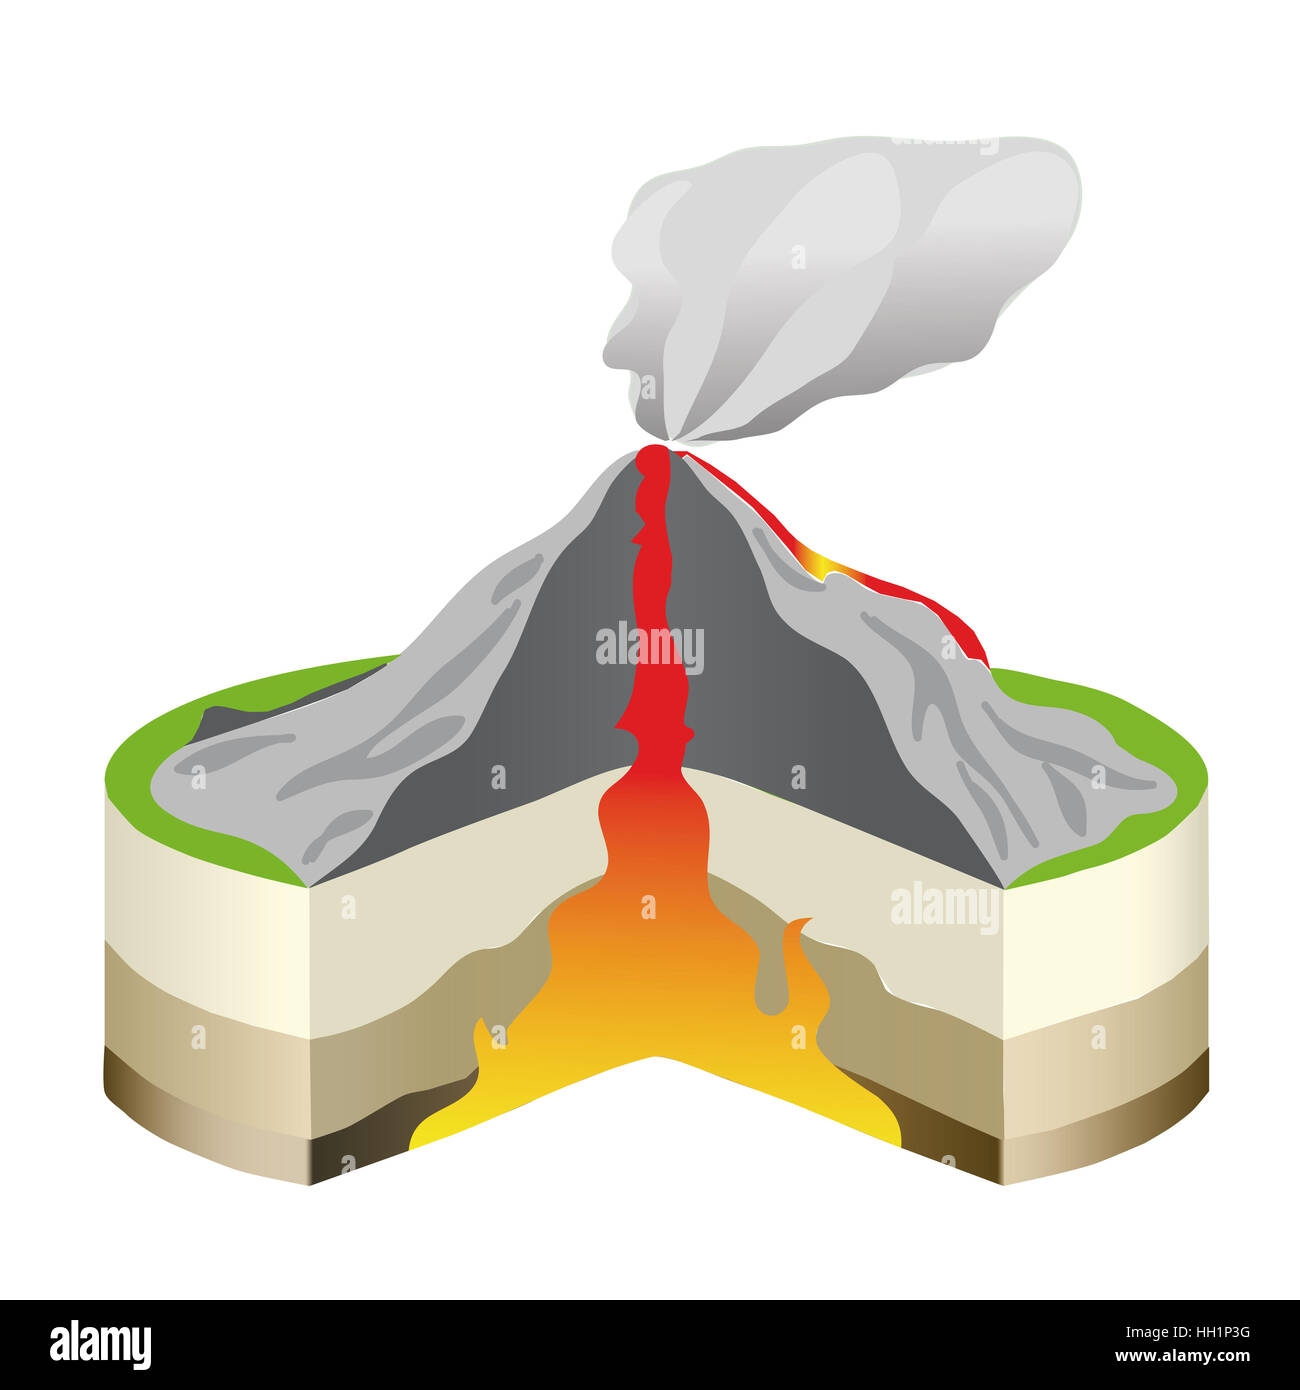 Volcano diagram stock photos volcano diagram stock images alamy volcano eruption cross section isolated vector info graphic hot lava vector illustration ccuart Gallery